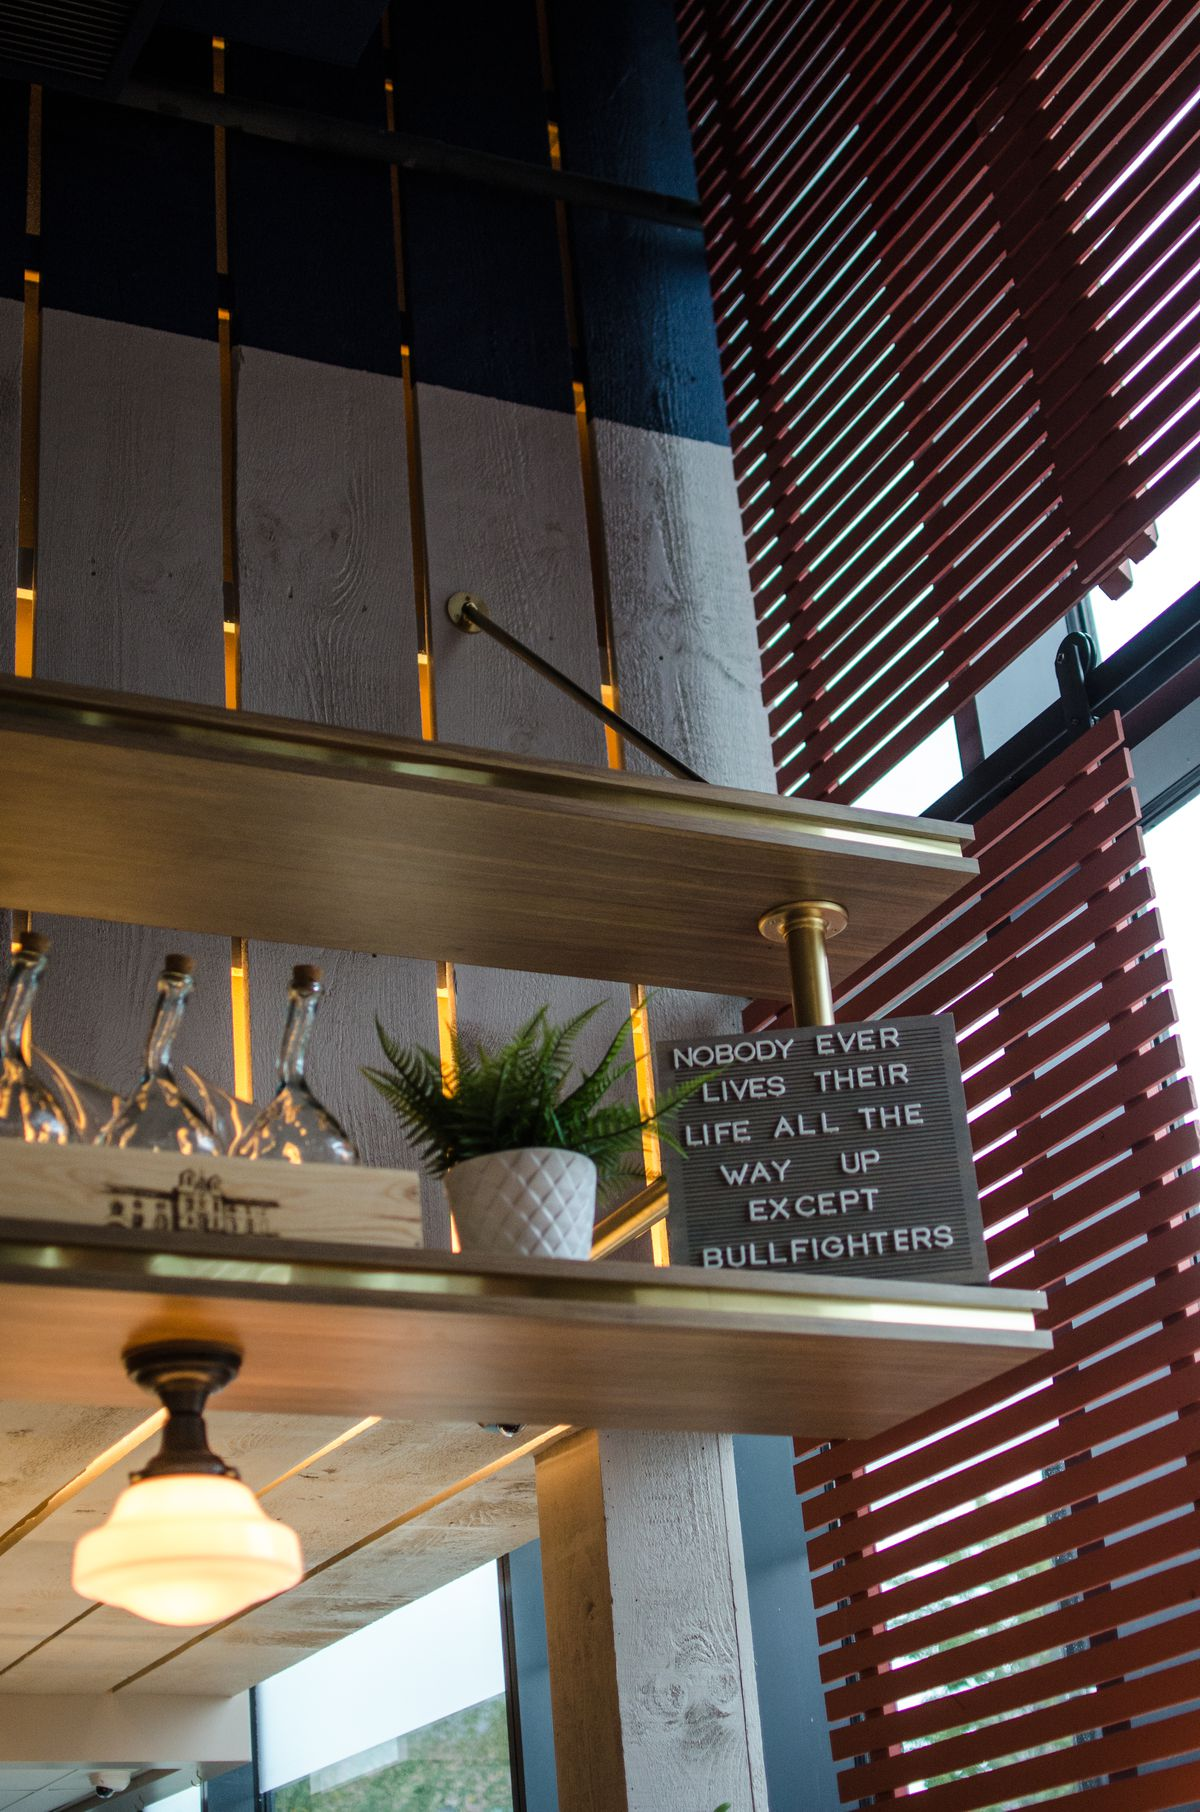 """Closeup on decor on a high shelf inside a restaurant, including a set of three porróns and a sign that says """"nobody ever lives their life all the way up except bullfighters"""""""